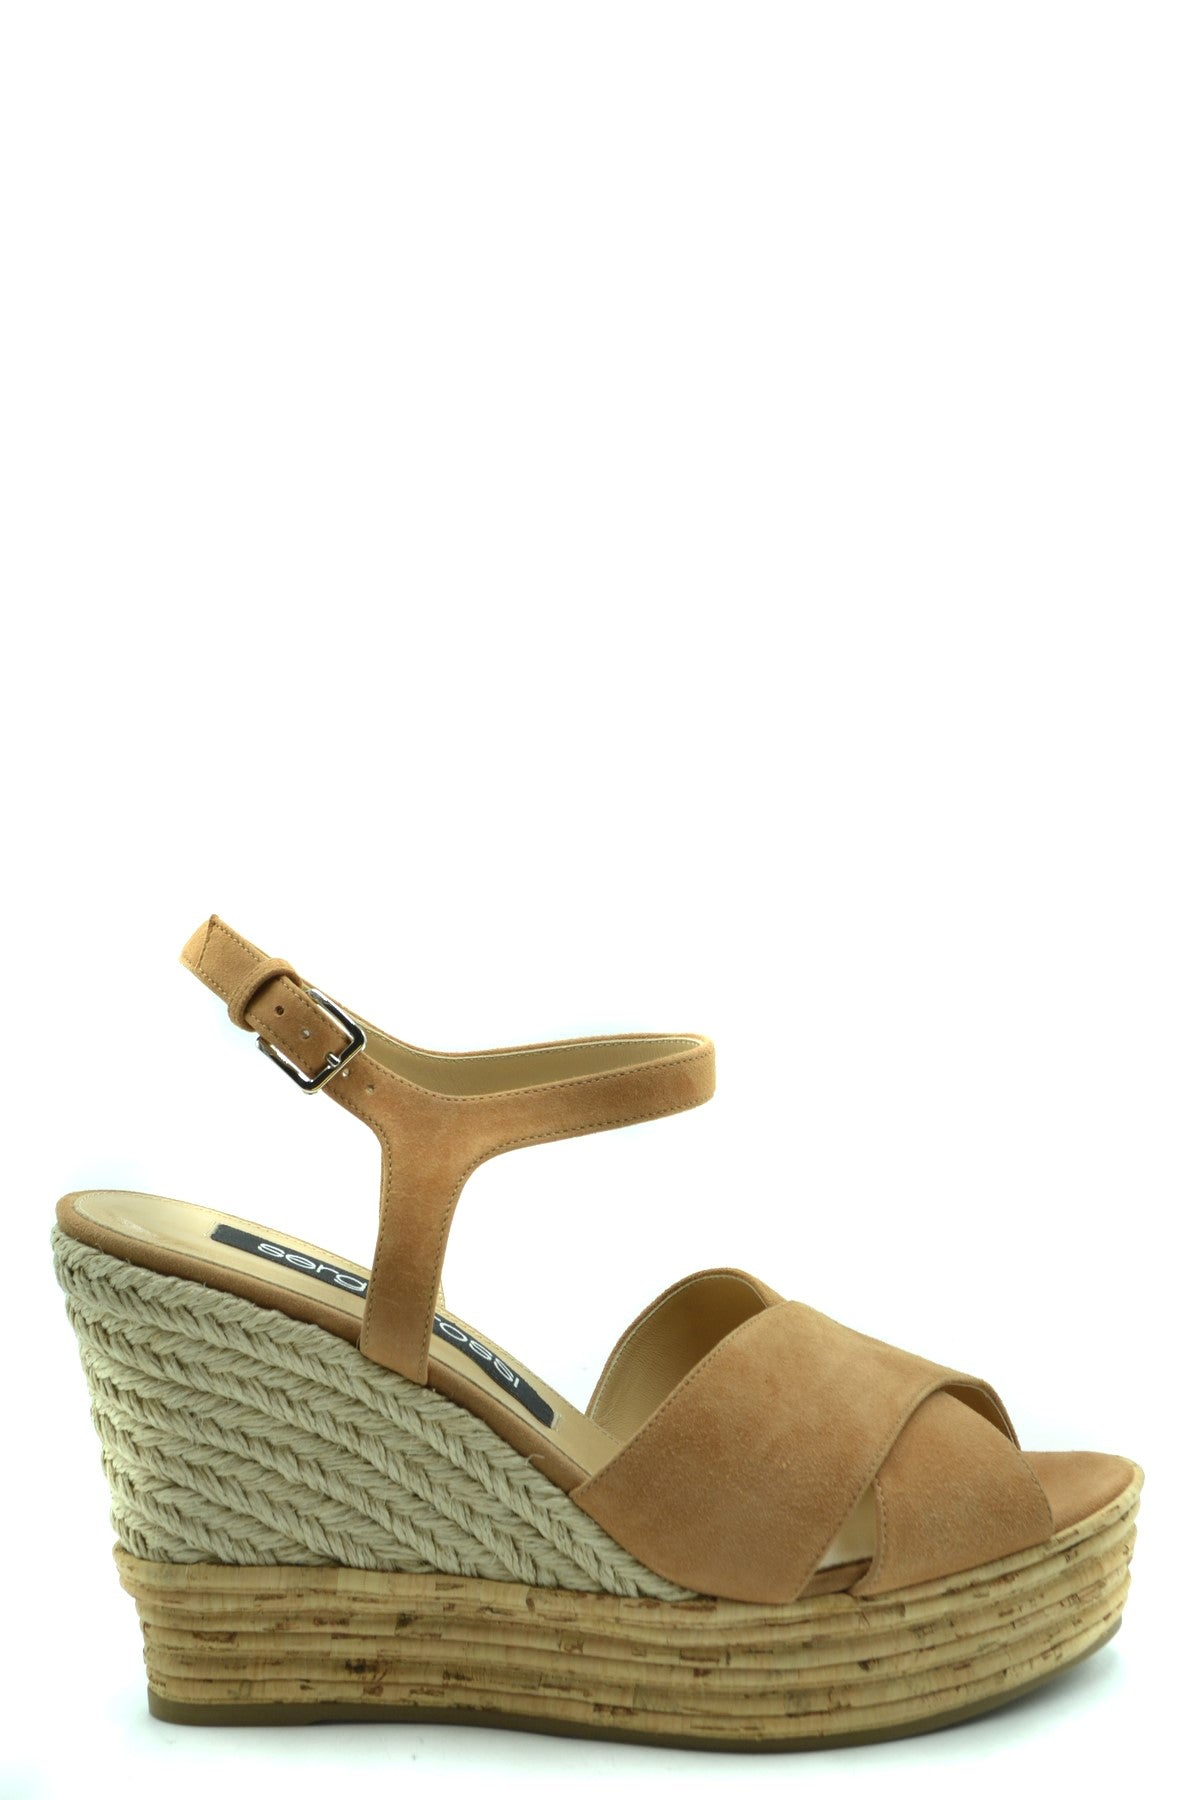 Shoes Sergio Rossi-Women's Fashion - Women's Shoes - Women's Sandals-36-Product Details Terms: New With LabelMain Color: BeigeType Of Accessory: ShoesSeason: Spring / SummerMade In: ItalyGender: WomanPlatform'S Height: 3,5 CmHeel'S Height: 11 CmSize: EuComposition: Suede 100%Year: 2020Manufacturer Part Number: A89560 Mcaz01-Keyomi-Sook